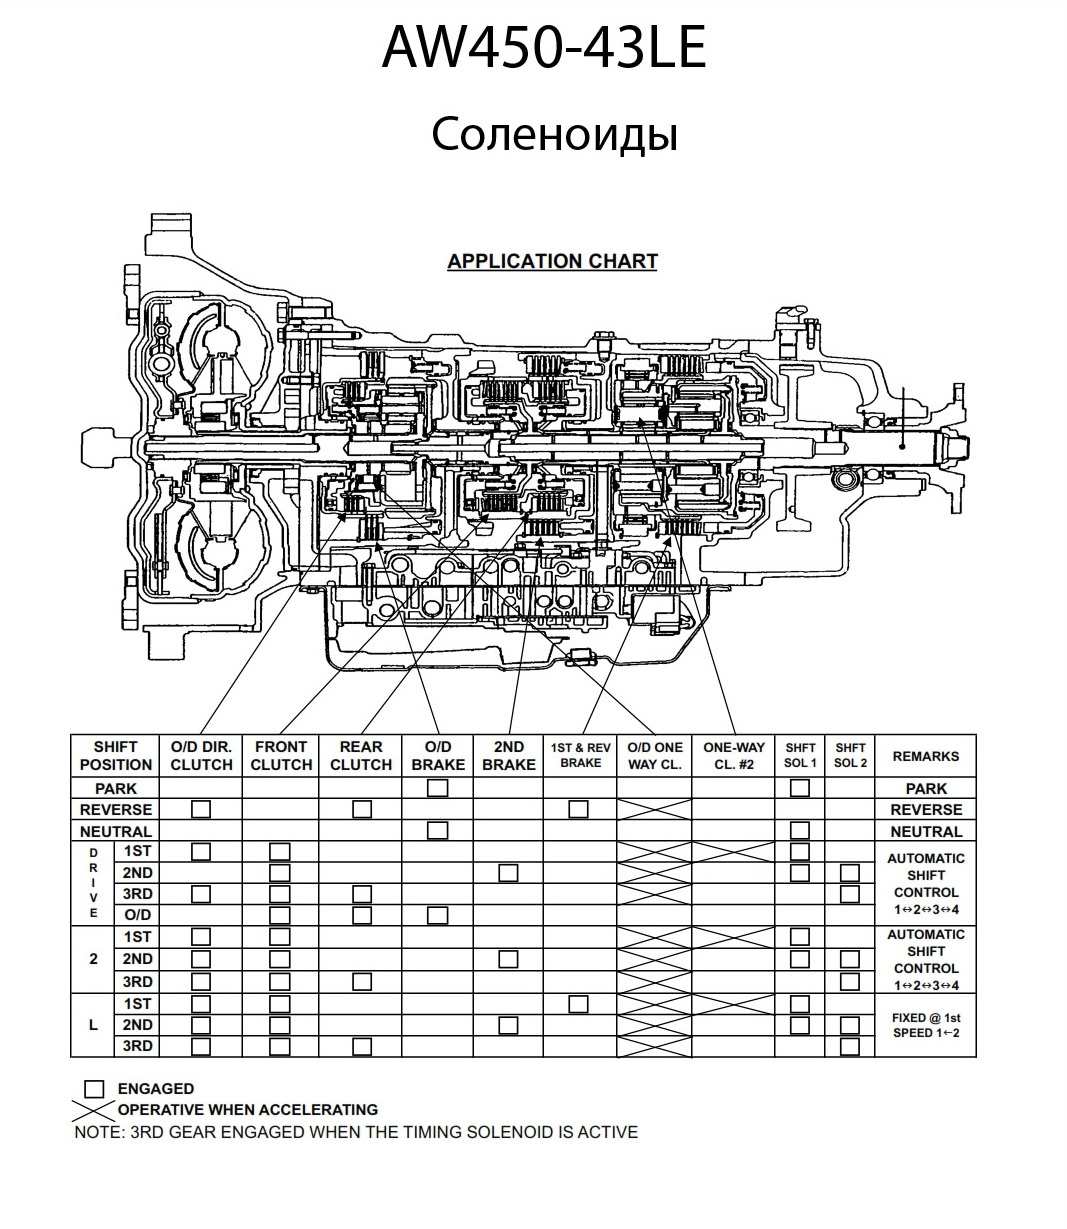 Transmission Repair Manuals Free 450 43le Wiring Diagram This Site Contains All Information About